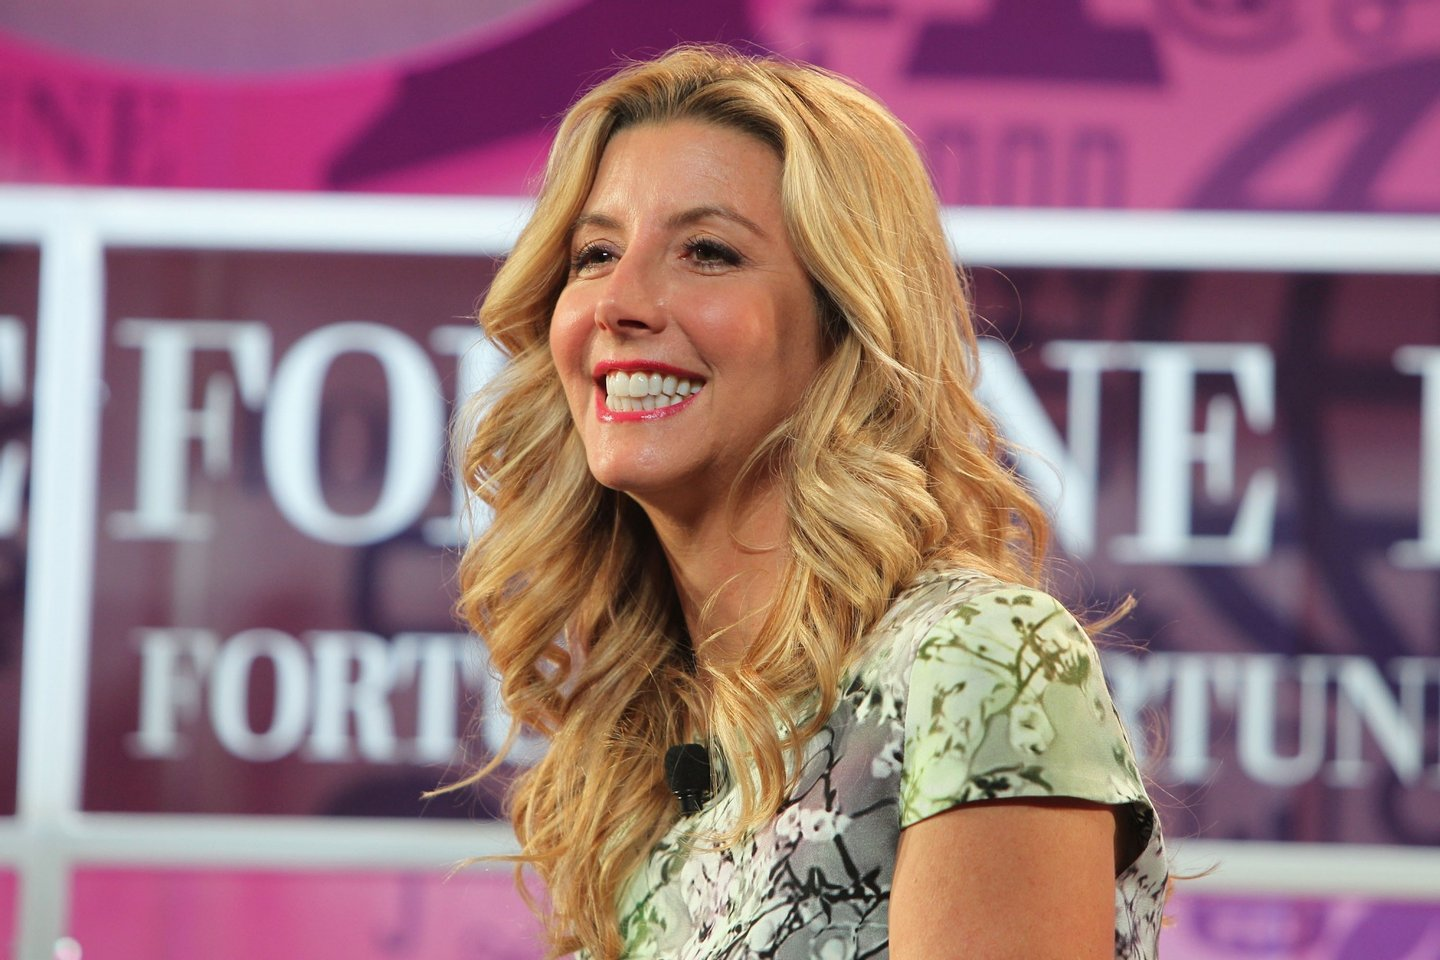 WASHINGTON, DC - OCTOBER 16: Founder of Spanx Sara Blakely speaks onstage at the FORTUNE Most Powerful Women Summit on October 16, 2013 in Washington, DC. (Photo by Paul Morigi/Getty Images for FORTUNE)